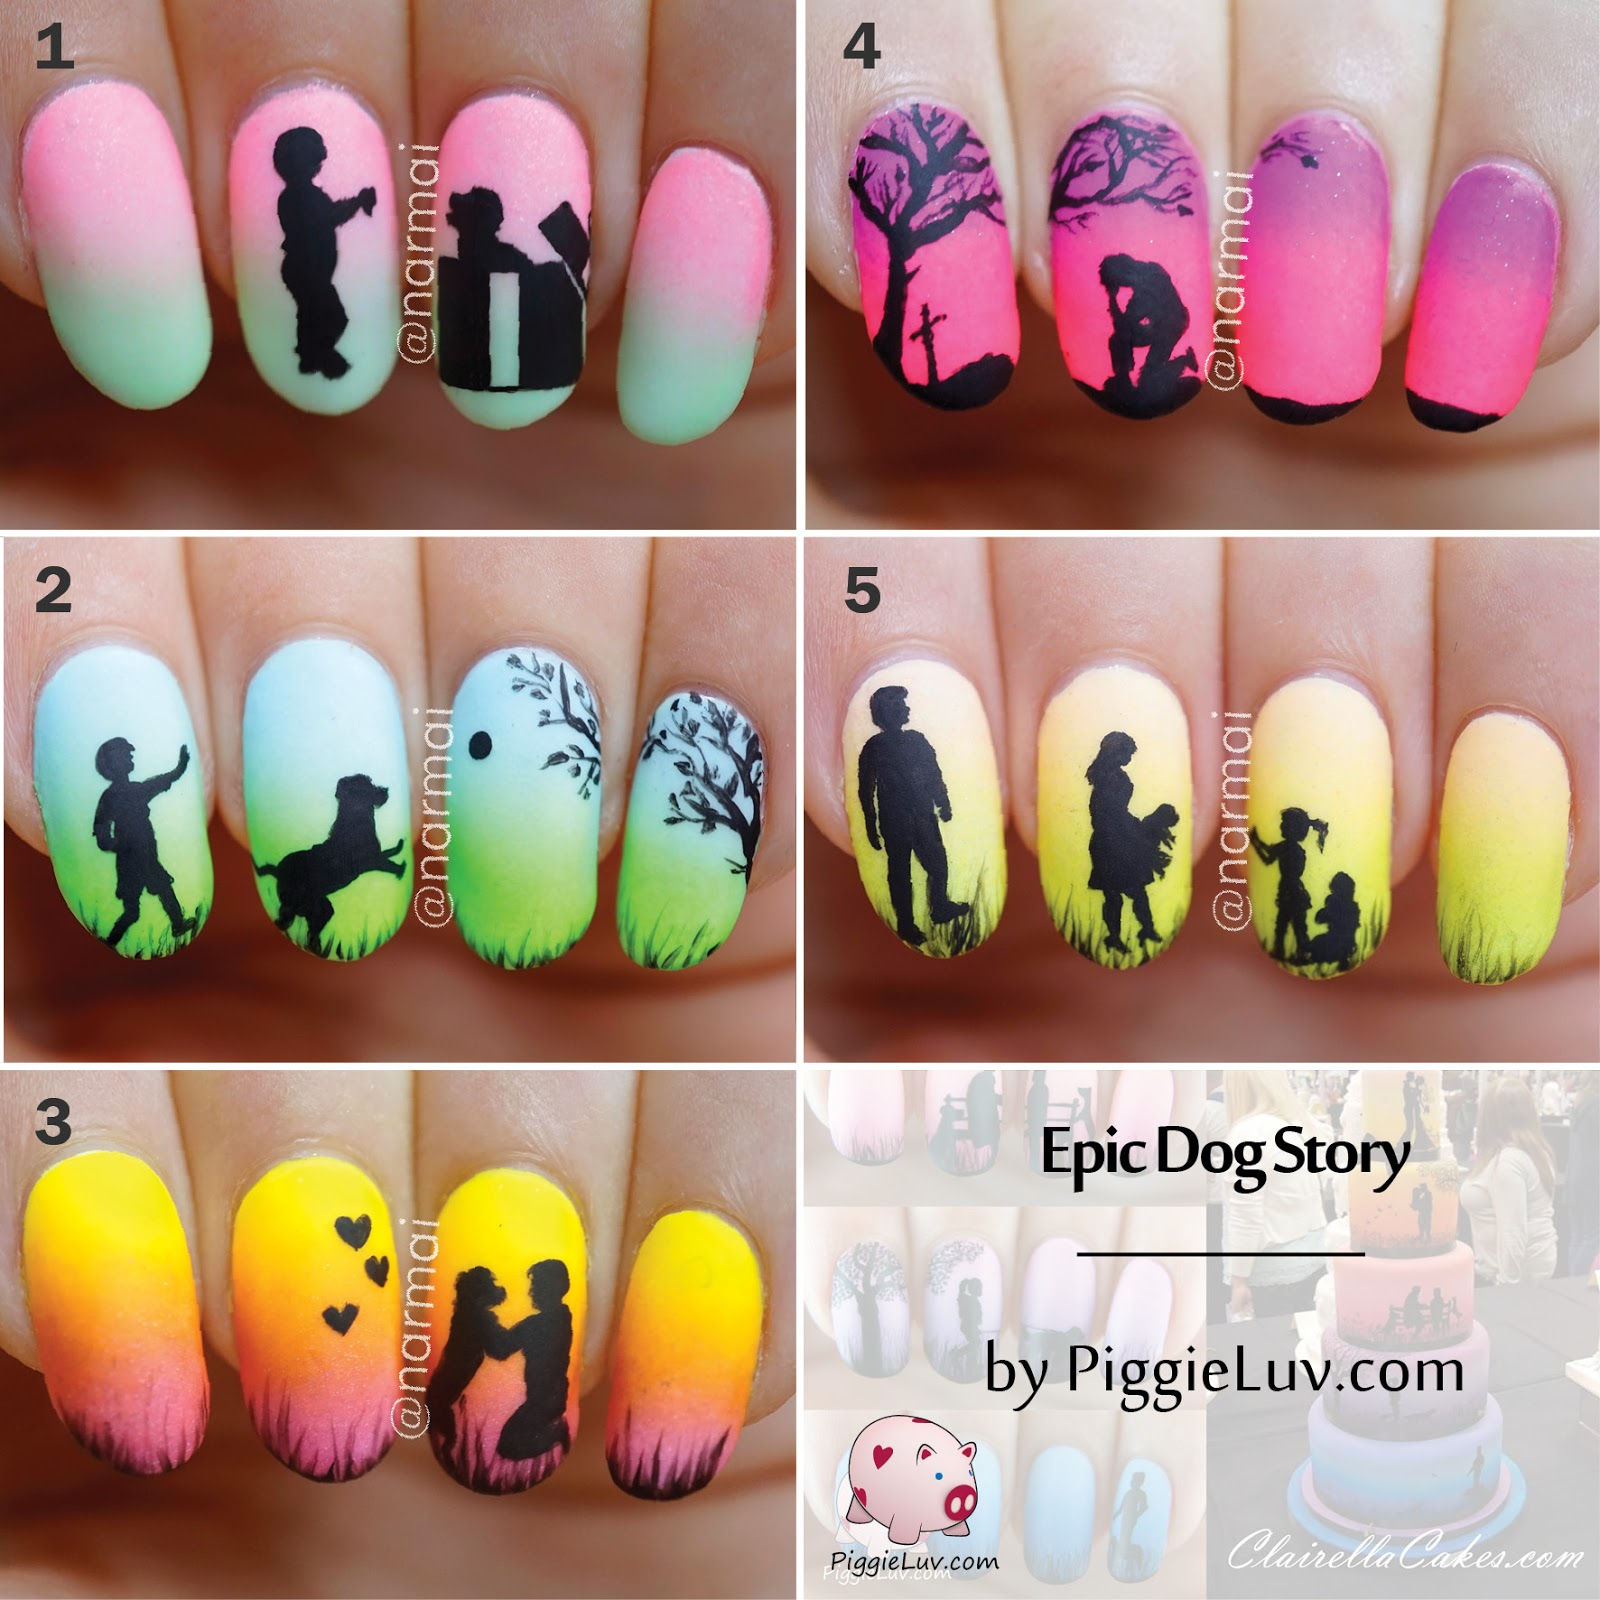 Piggieluv epic dog story 5 glow in the dark manis a big thank you to hypnotic polish for stocking serum no 5 and keeping my addiction fed and because i know you all like to pin these stories prinsesfo Image collections